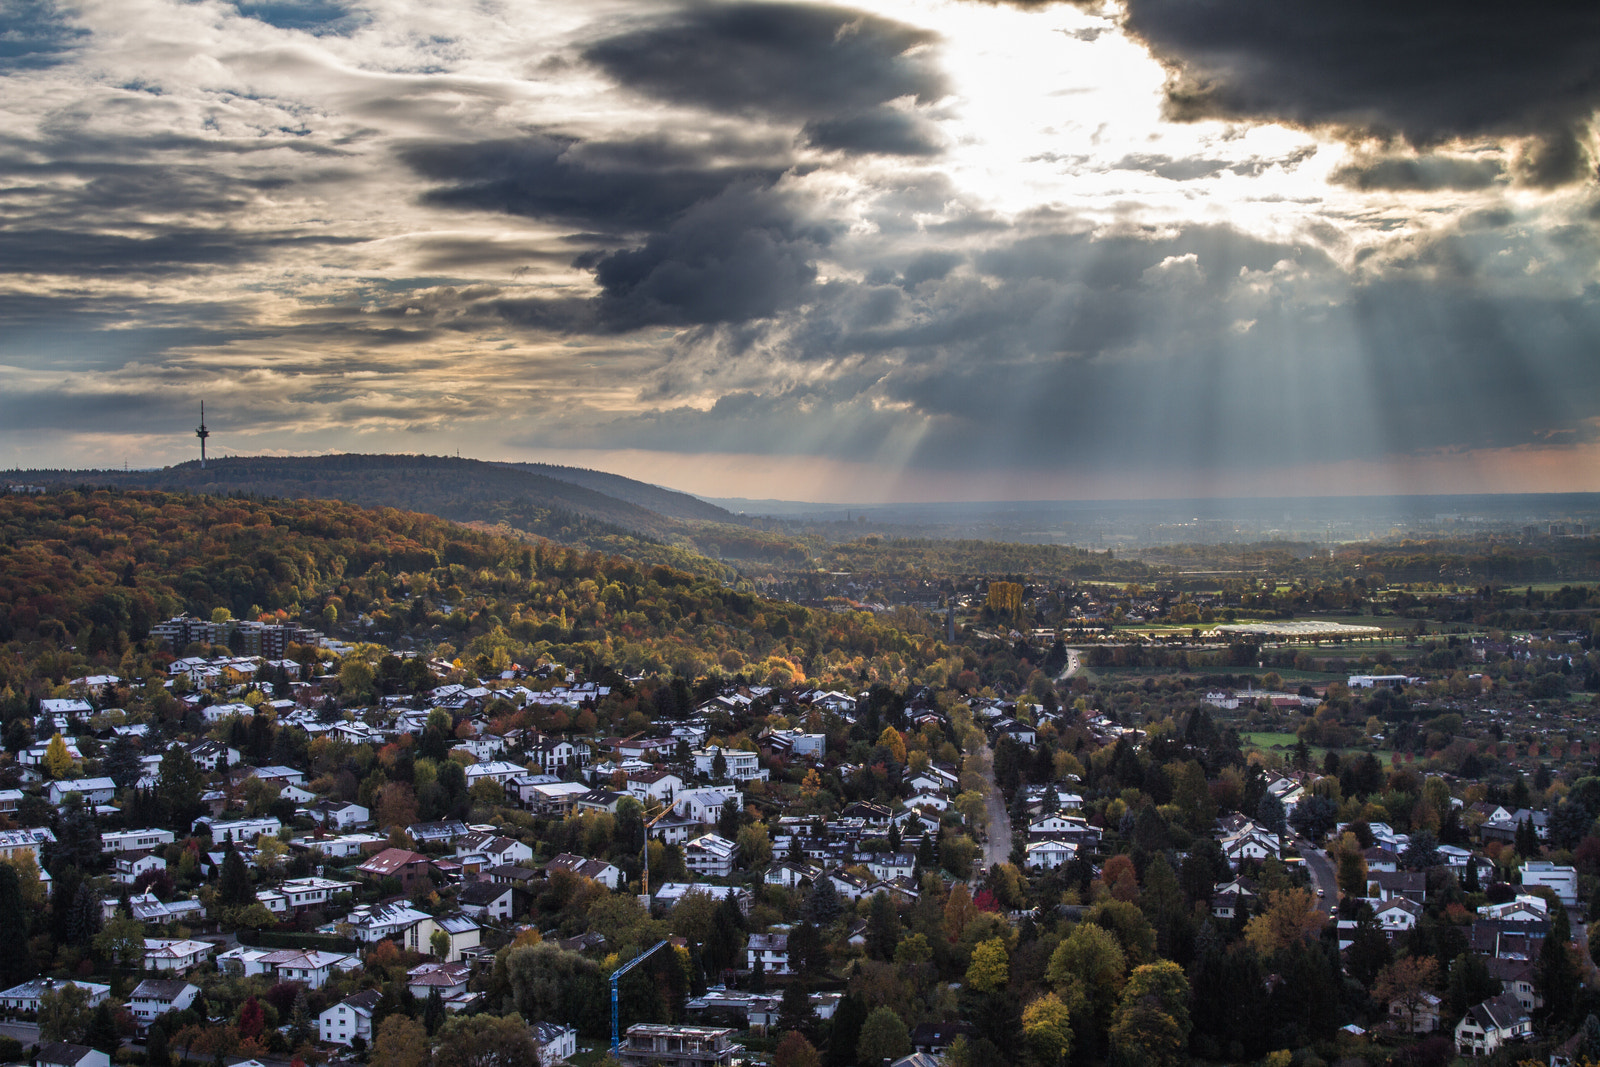 Photograph Autumn Day IV by Philipp K on 500px